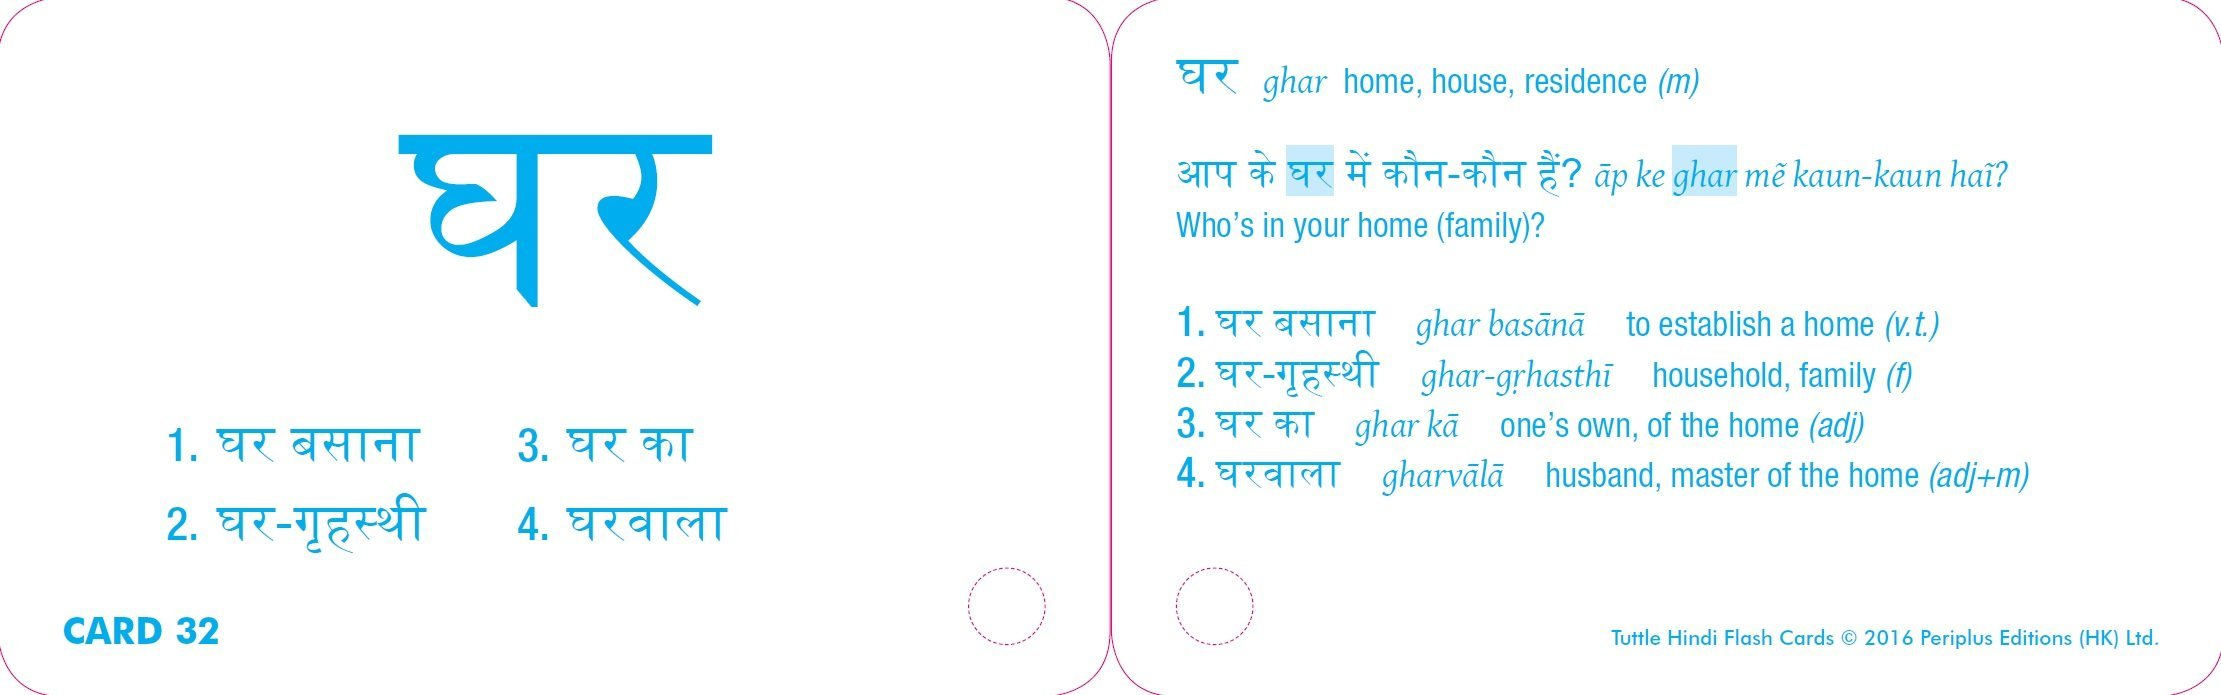 Hindi Flash Cards Kit: Learn 1, 500 basic Hindi words and phrases